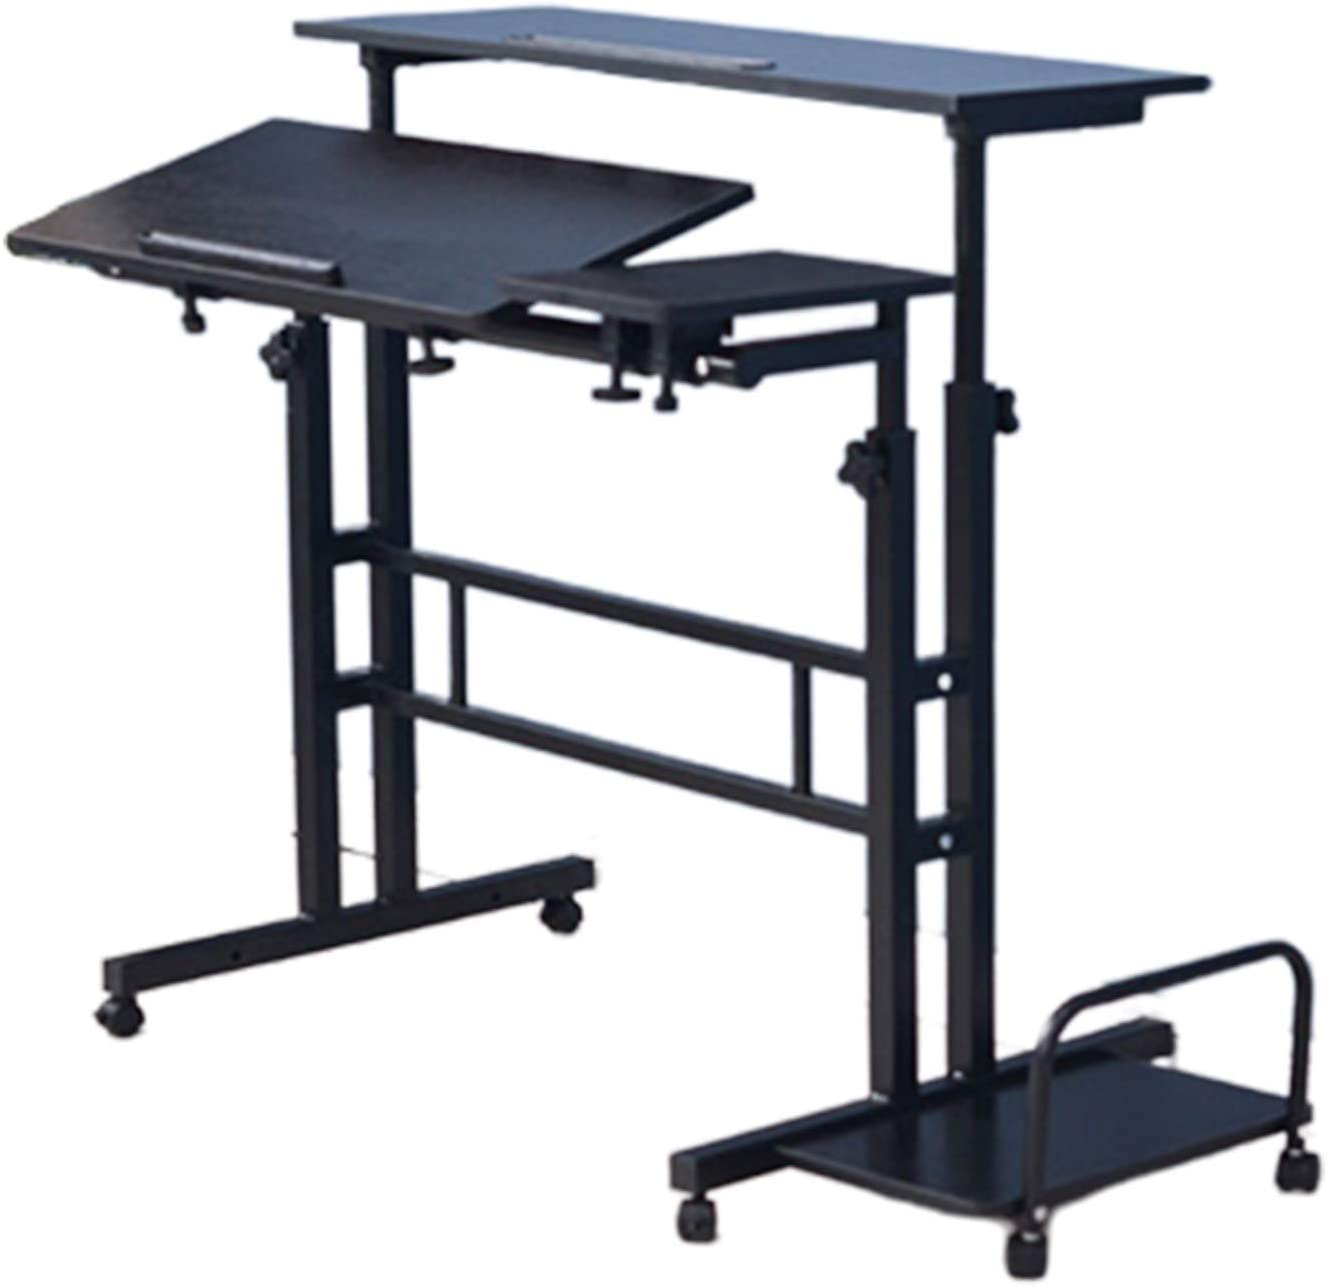 XHWine Mobile Inexpensive Standing Opening large release sale Desk Height Angle Up Stand Adjustable